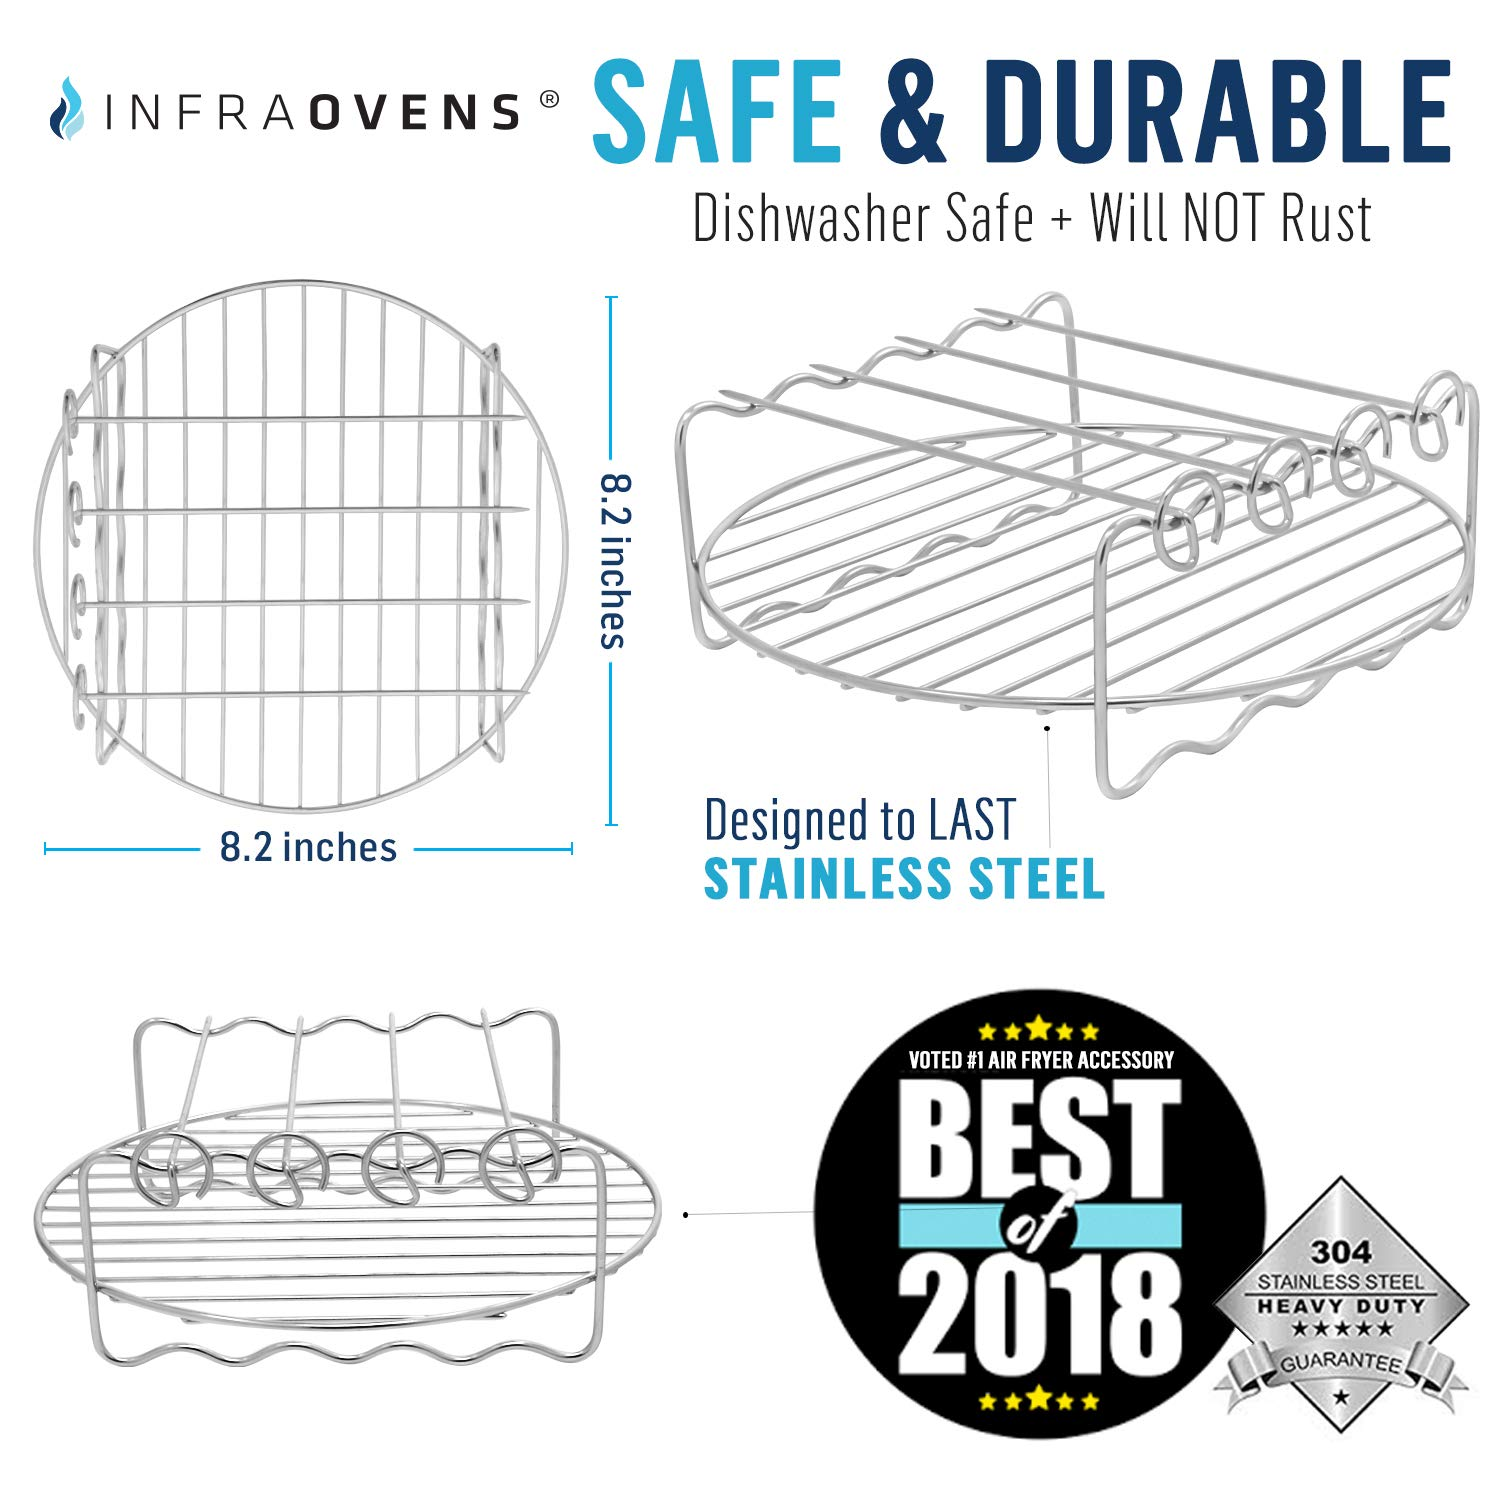 Black+Decker Power Airfryer GoWise Cozyna Chefman Air Fryer Rack Accessories Set Compatible with Philips Ninja Foodi Secura Farberware Emerald +More Deep Fryers /& Up by Infraovens